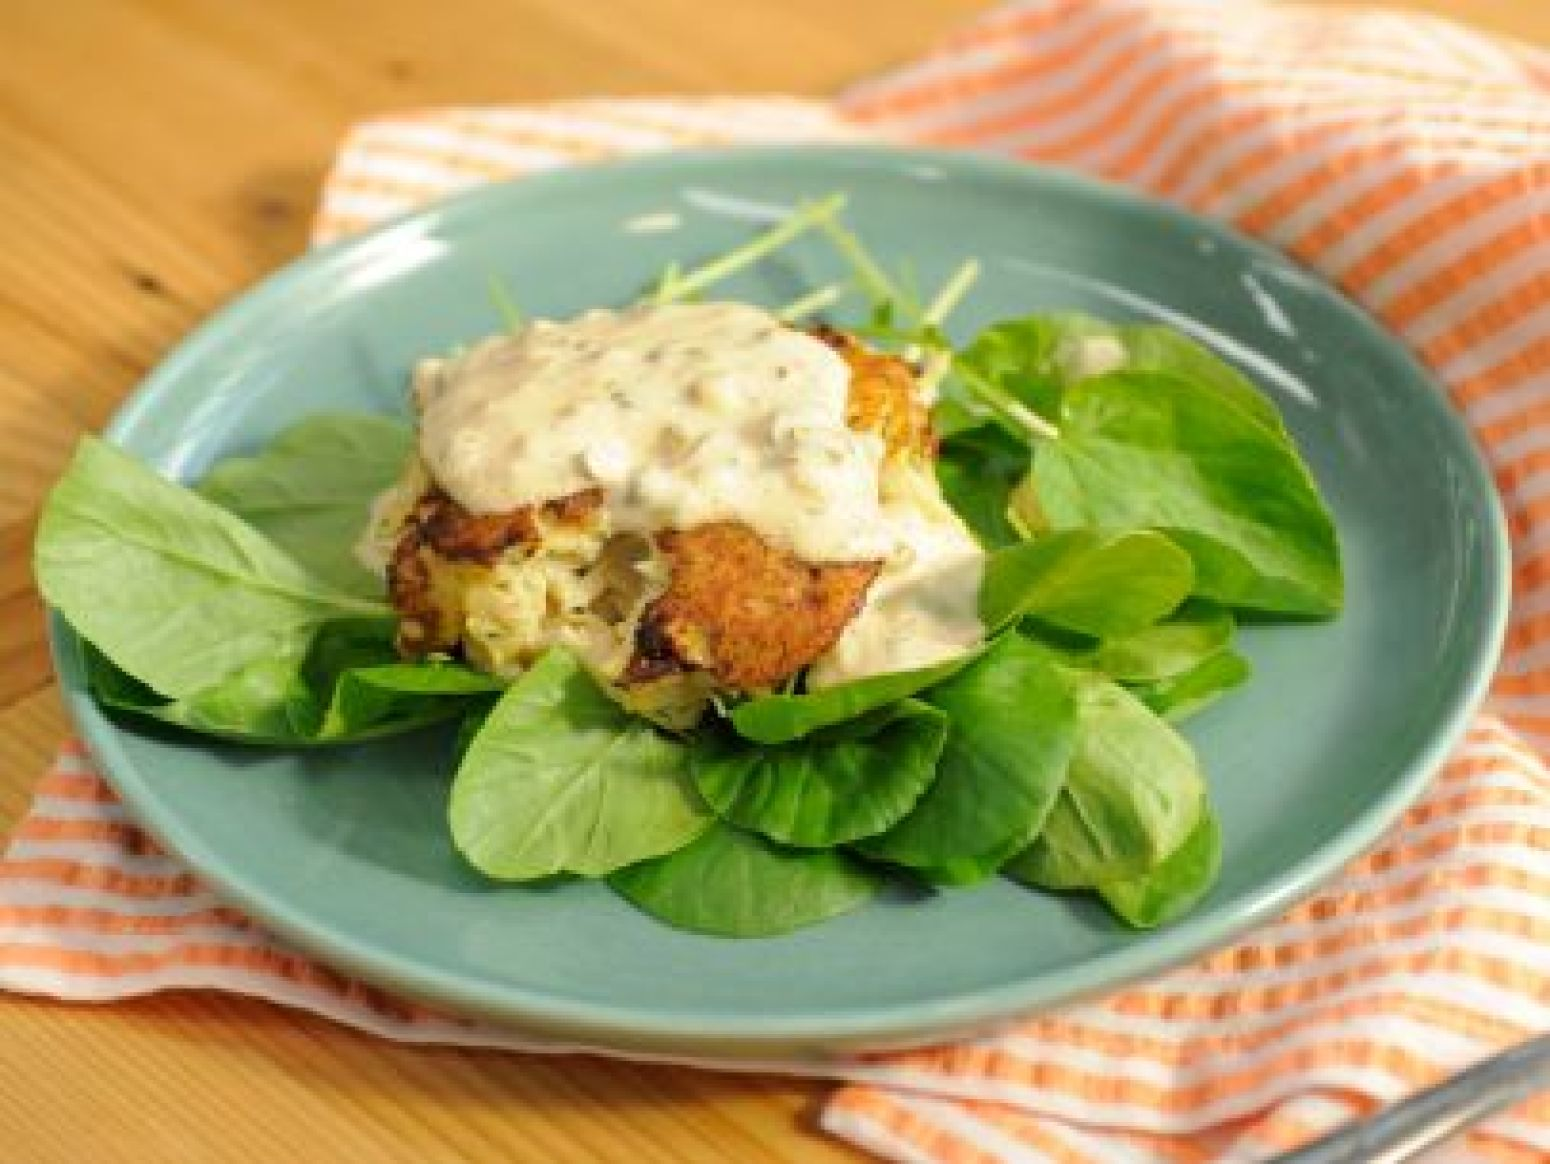 Crab Cakes with Remoulade Sauce Recipe 2 | Just A Pinch Recipes